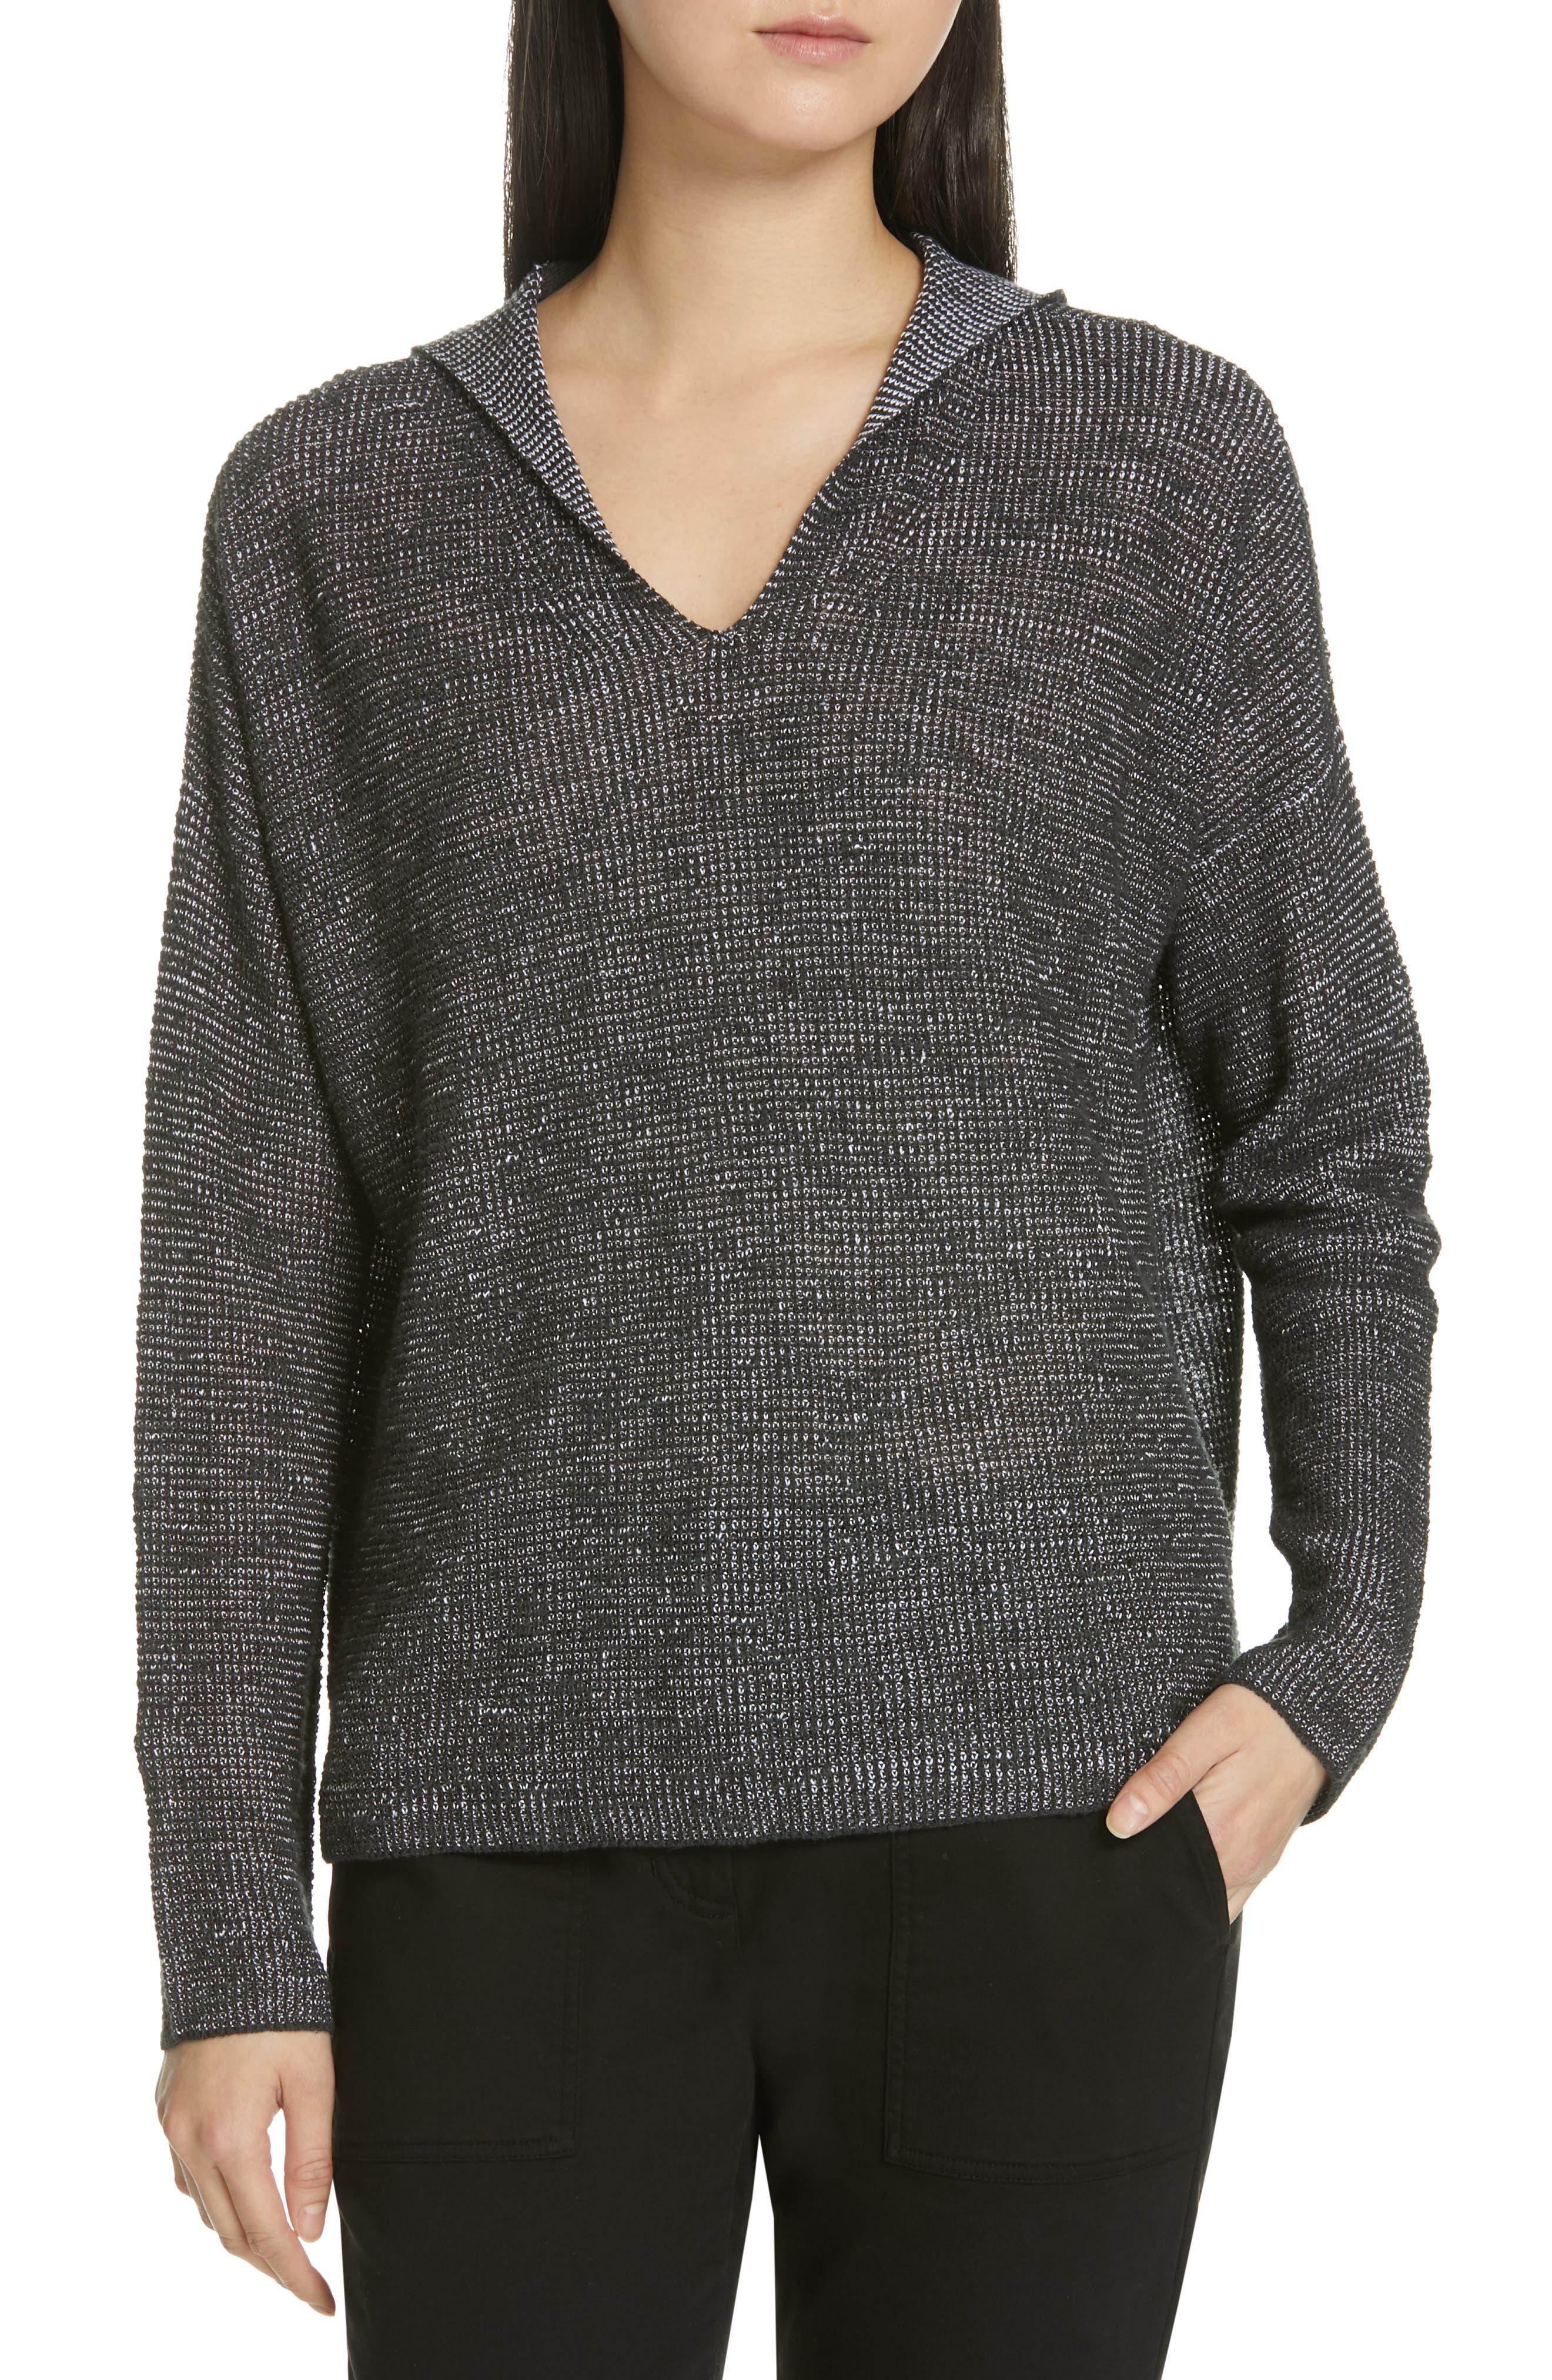 EILEEN FISHER Organic Linen & Cotton Boxy Hooded Top, Main, color, CHARCOAL